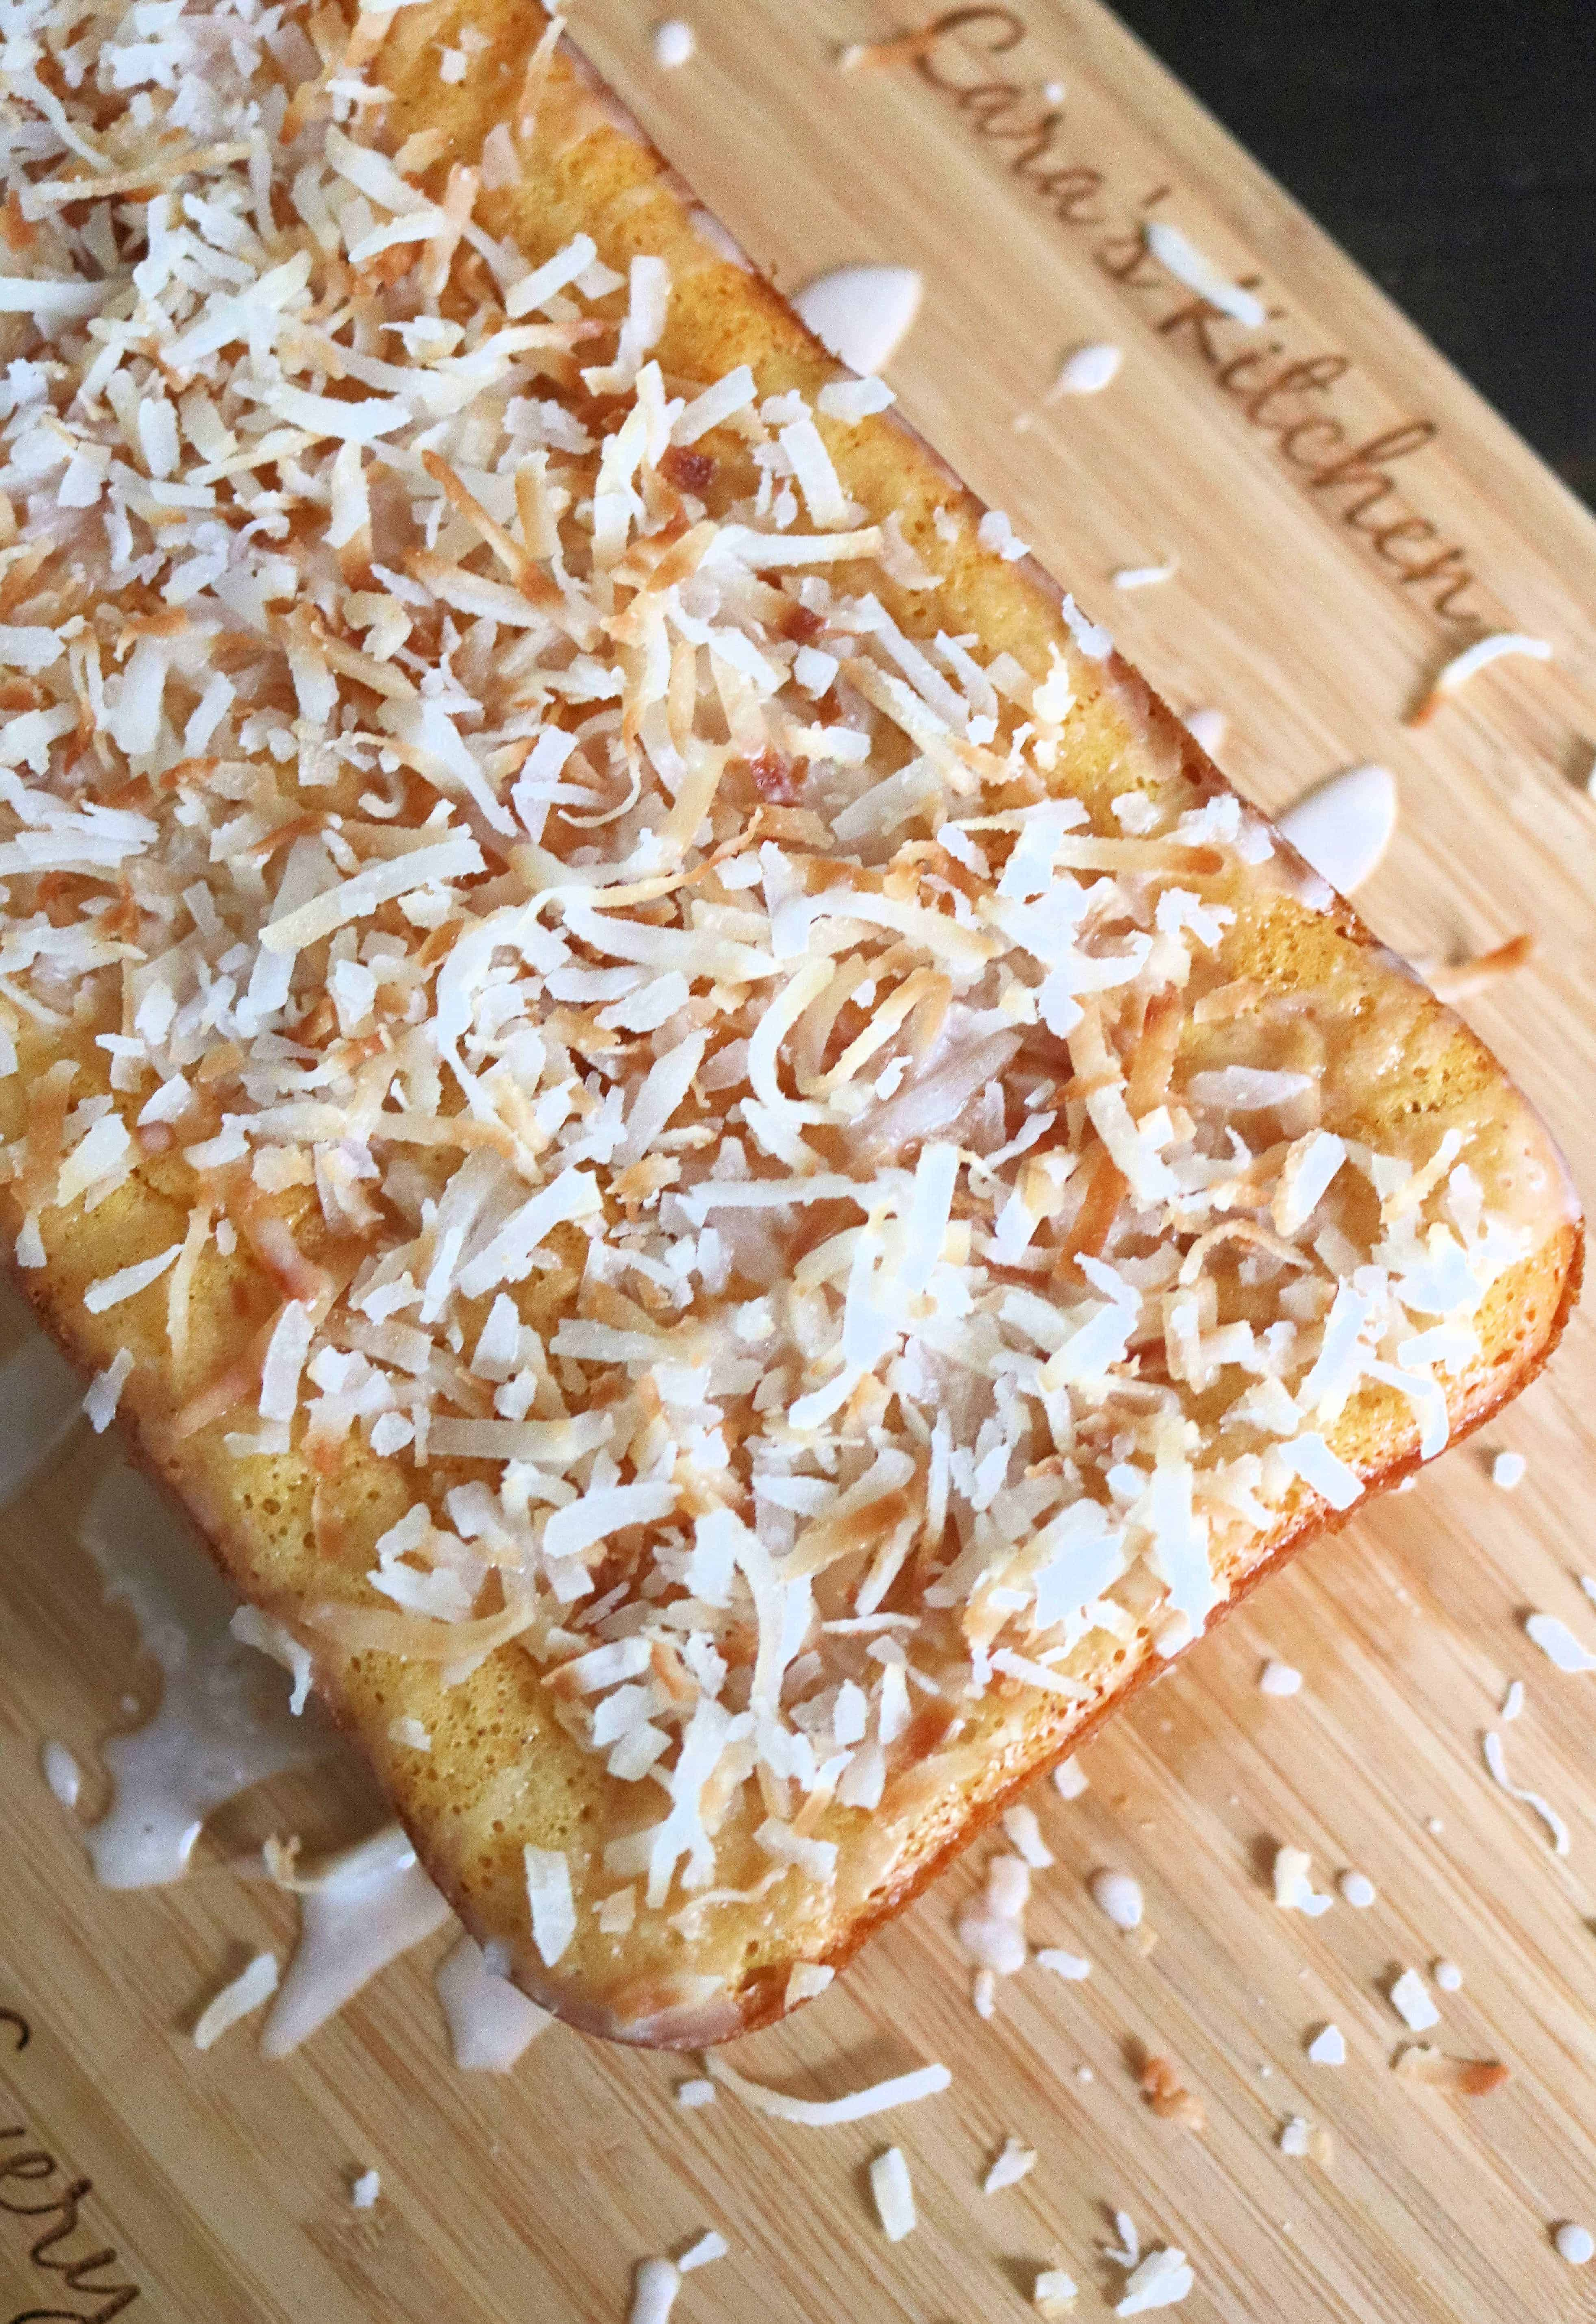 This easy coconut pineapple bread is sweet, moist, and so delicious! This pineapple bread is made with a boxed cake mix, crushed pineapple, coconut, and features a delicious sweet icing on top! #pineapplebread #bread #quickbread #baking